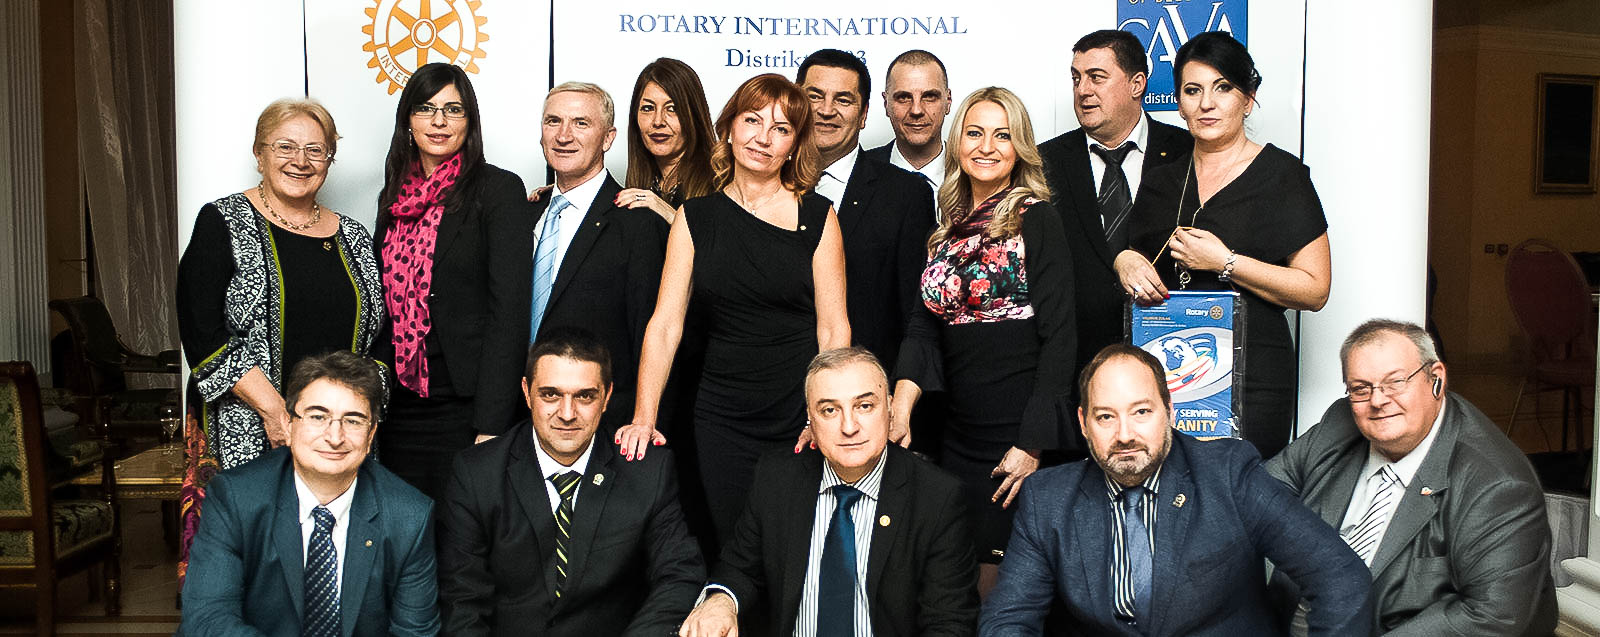 ROTARY CLUB<br>BELGRADE SAVA